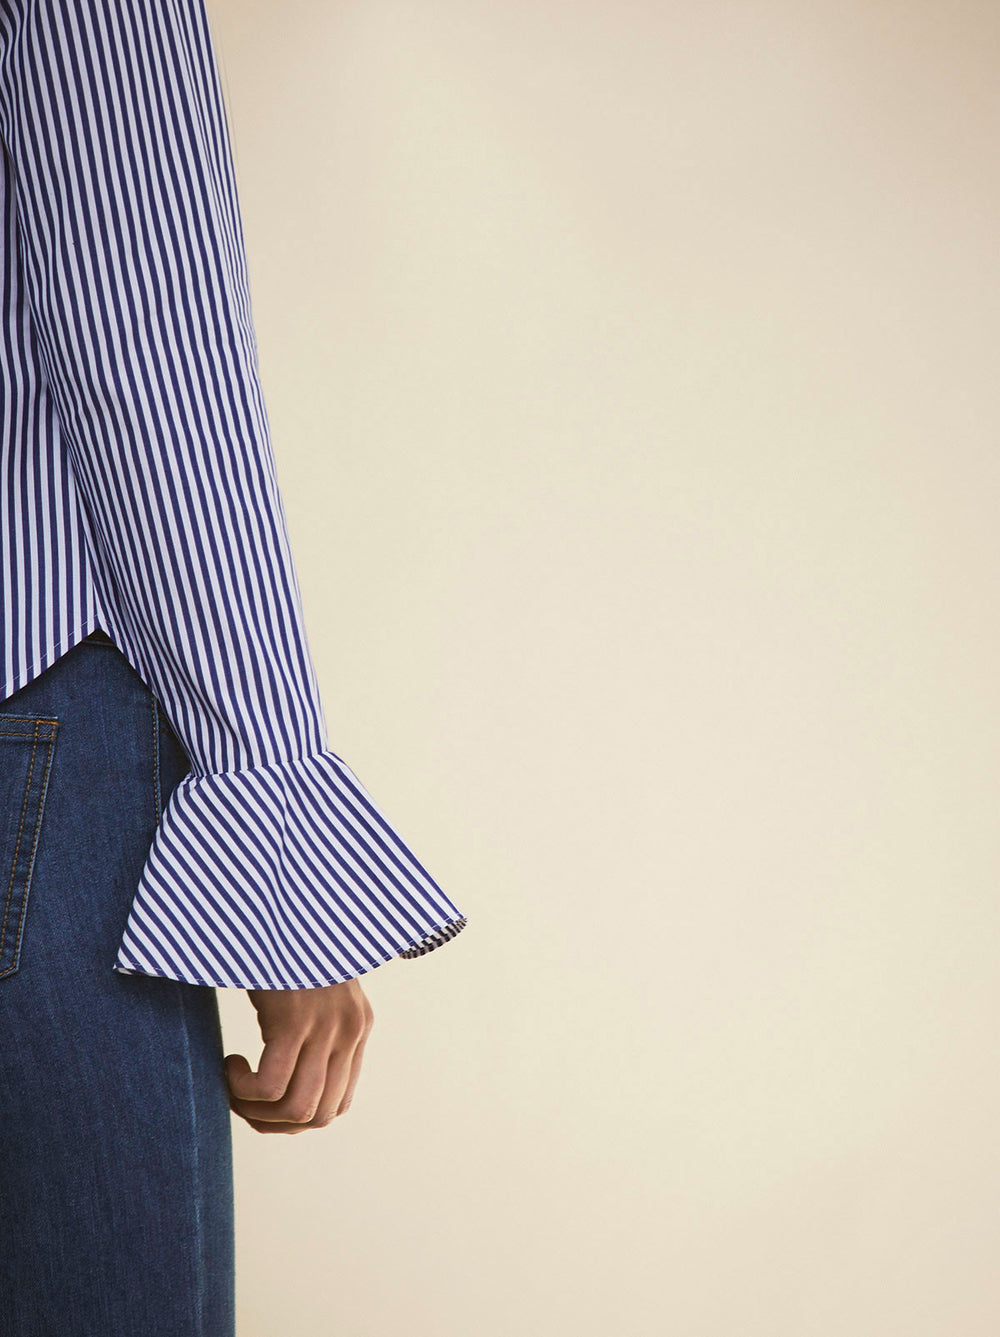 Odette Pinstripe Cotton Shirt With Statement Petal Sleeves by KITRI studio